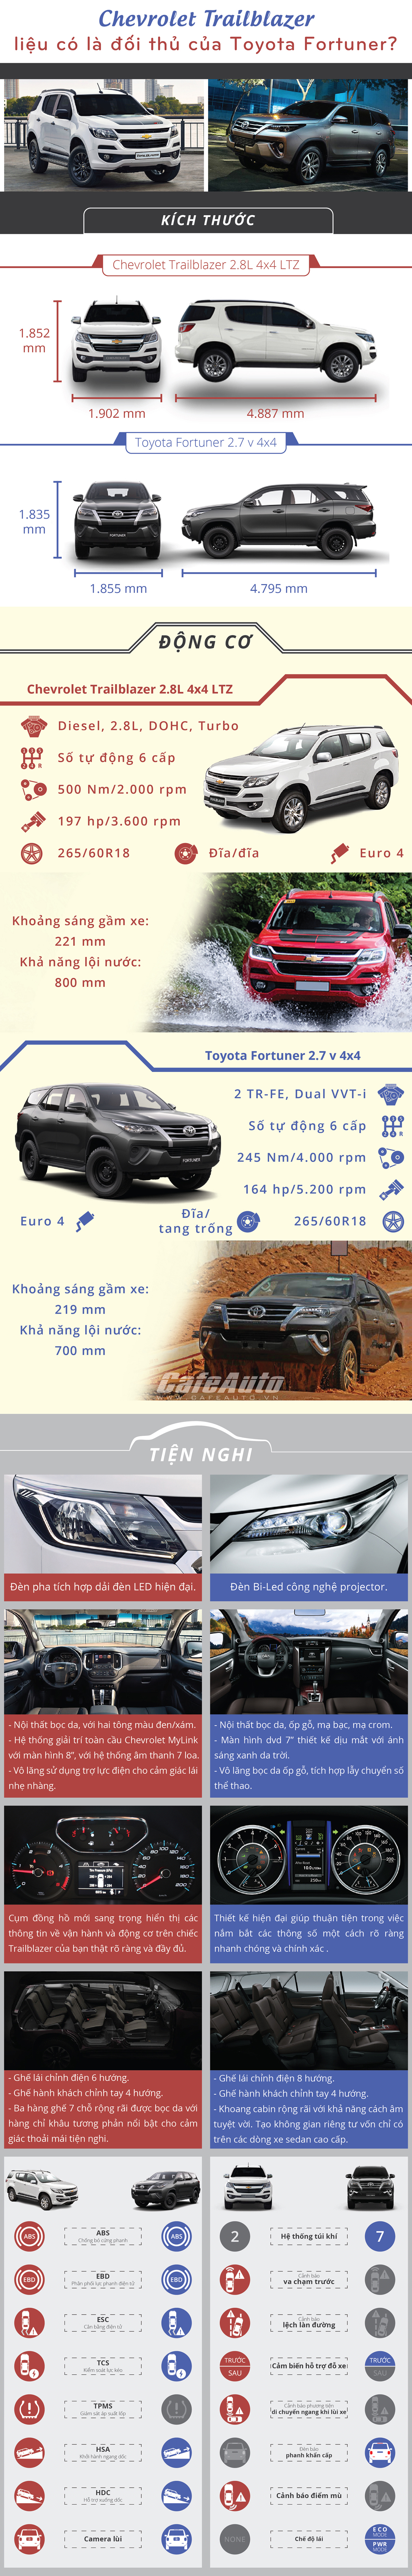 chevrolet-trailblazer-lieu-co-la-doi-thu-cua-toyota-fortuner